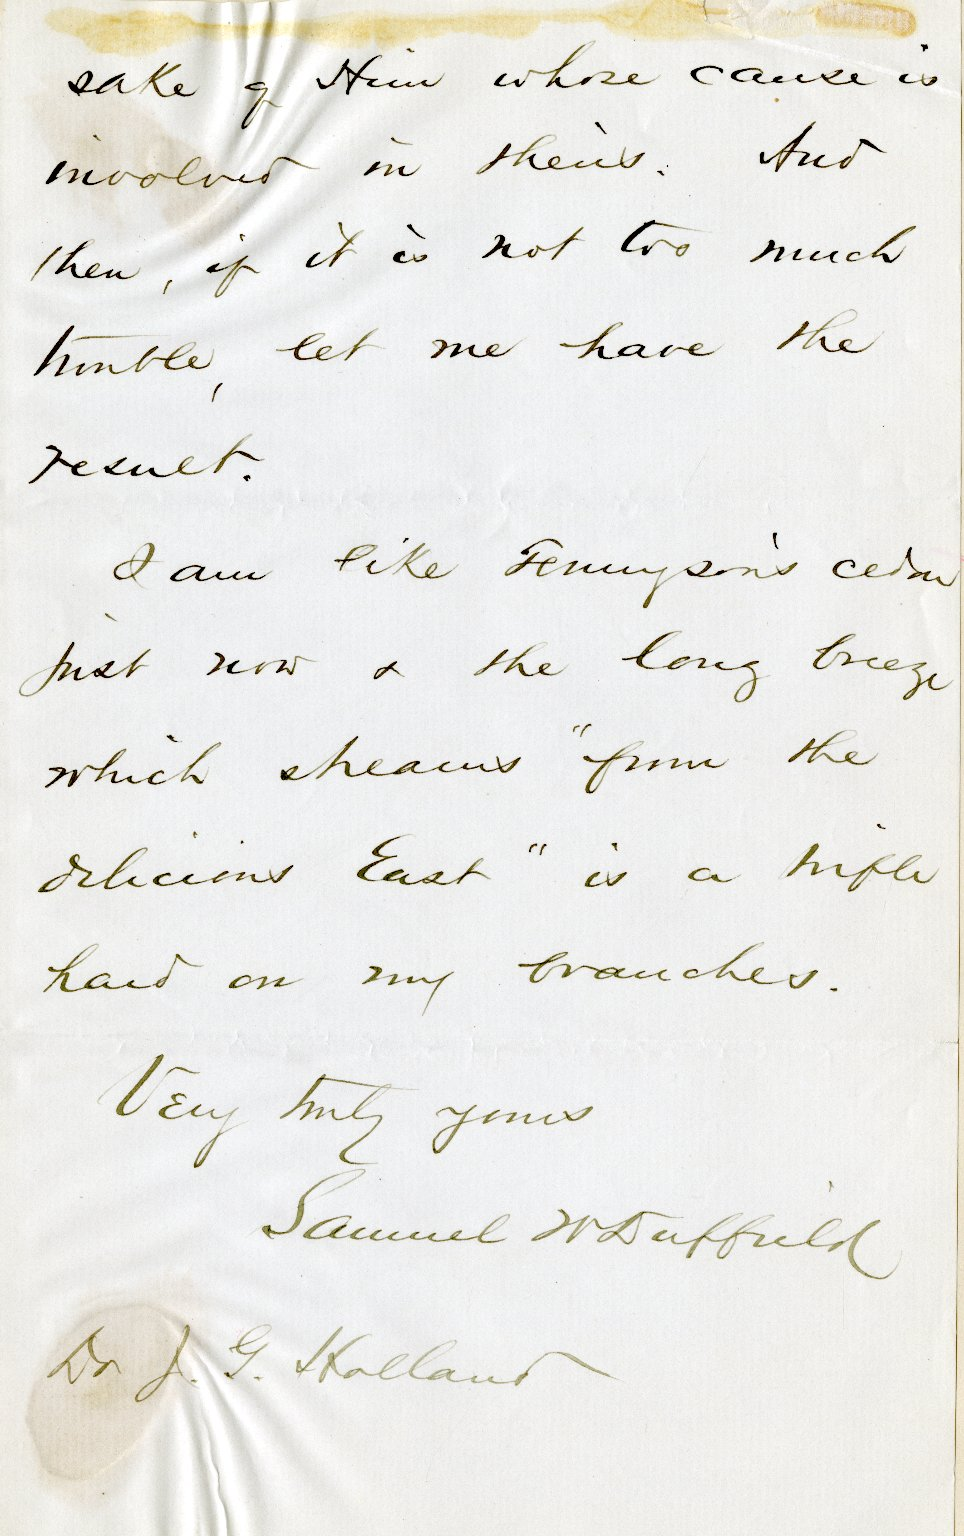 Duffield, Samuel W. ALS, 5 pages, October 16, 1872.